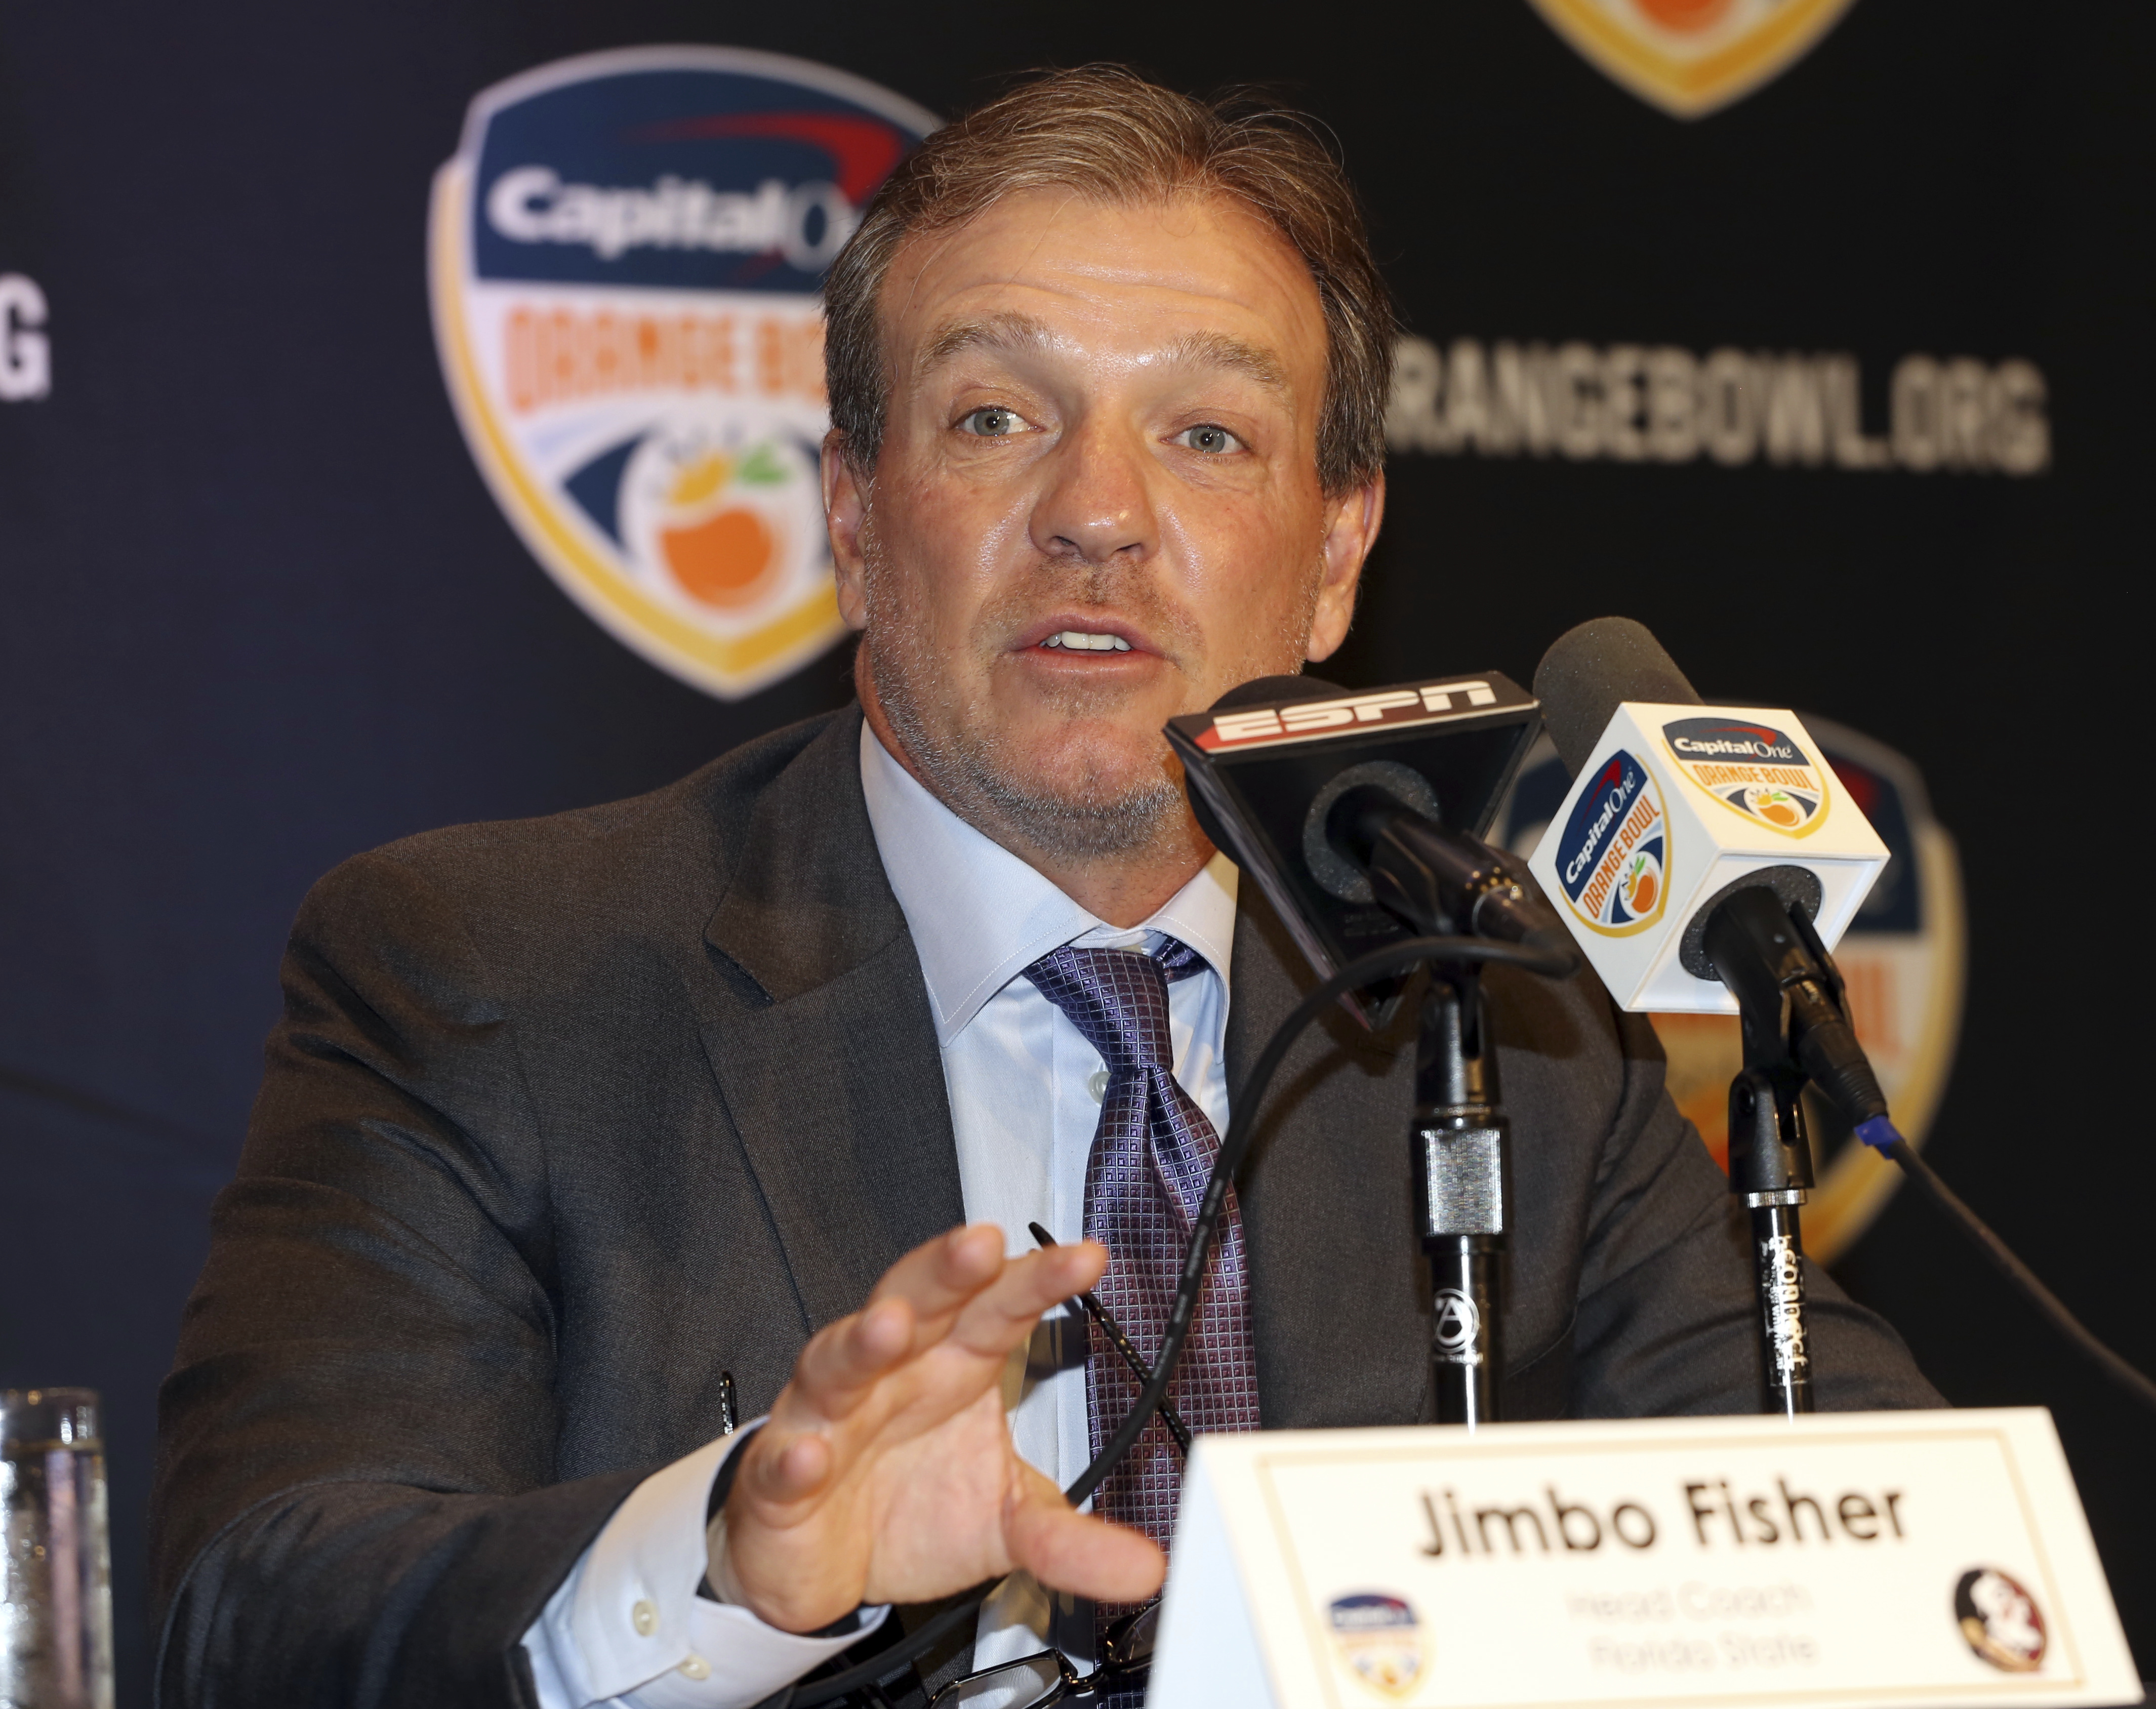 Florida State head coach Jimbo Fisher speaks during a news conference in Fort Lauderdale, Fla., Thursday, Dec. 29, 2016. Florida State plays Michigan in the Orange Bowl Friday. (AP Photo/Marta Lavandier)